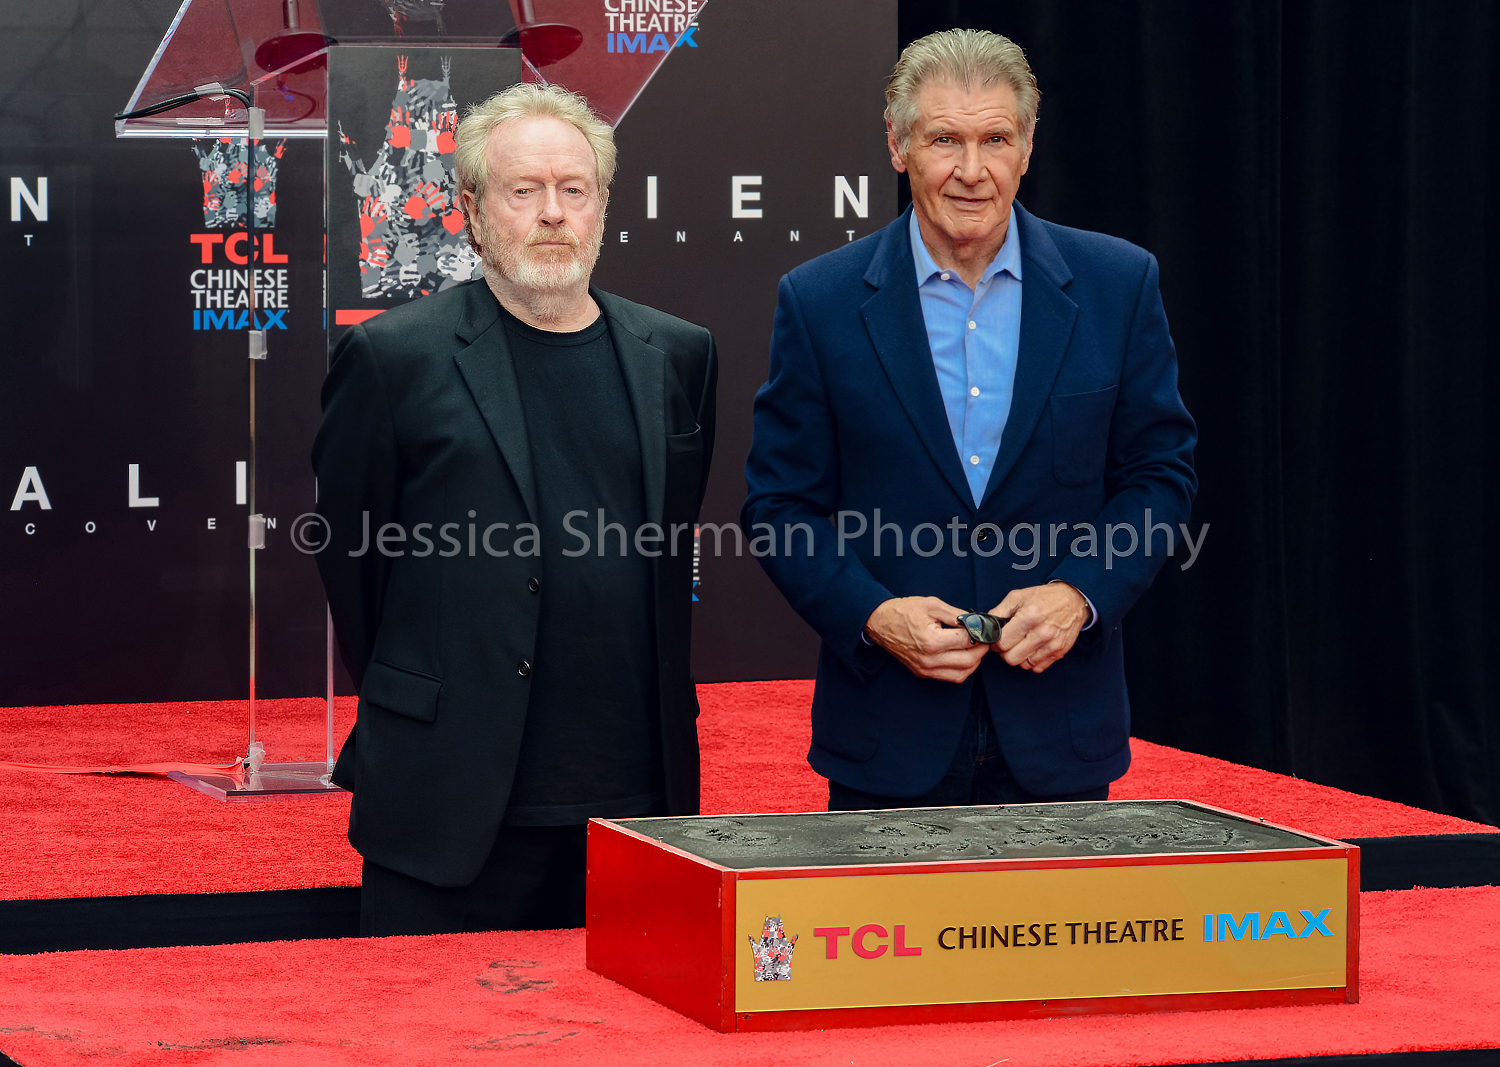 Ridley_Scott_Harrison_Ford_Jessica_Sherman (1 of 1).jpg